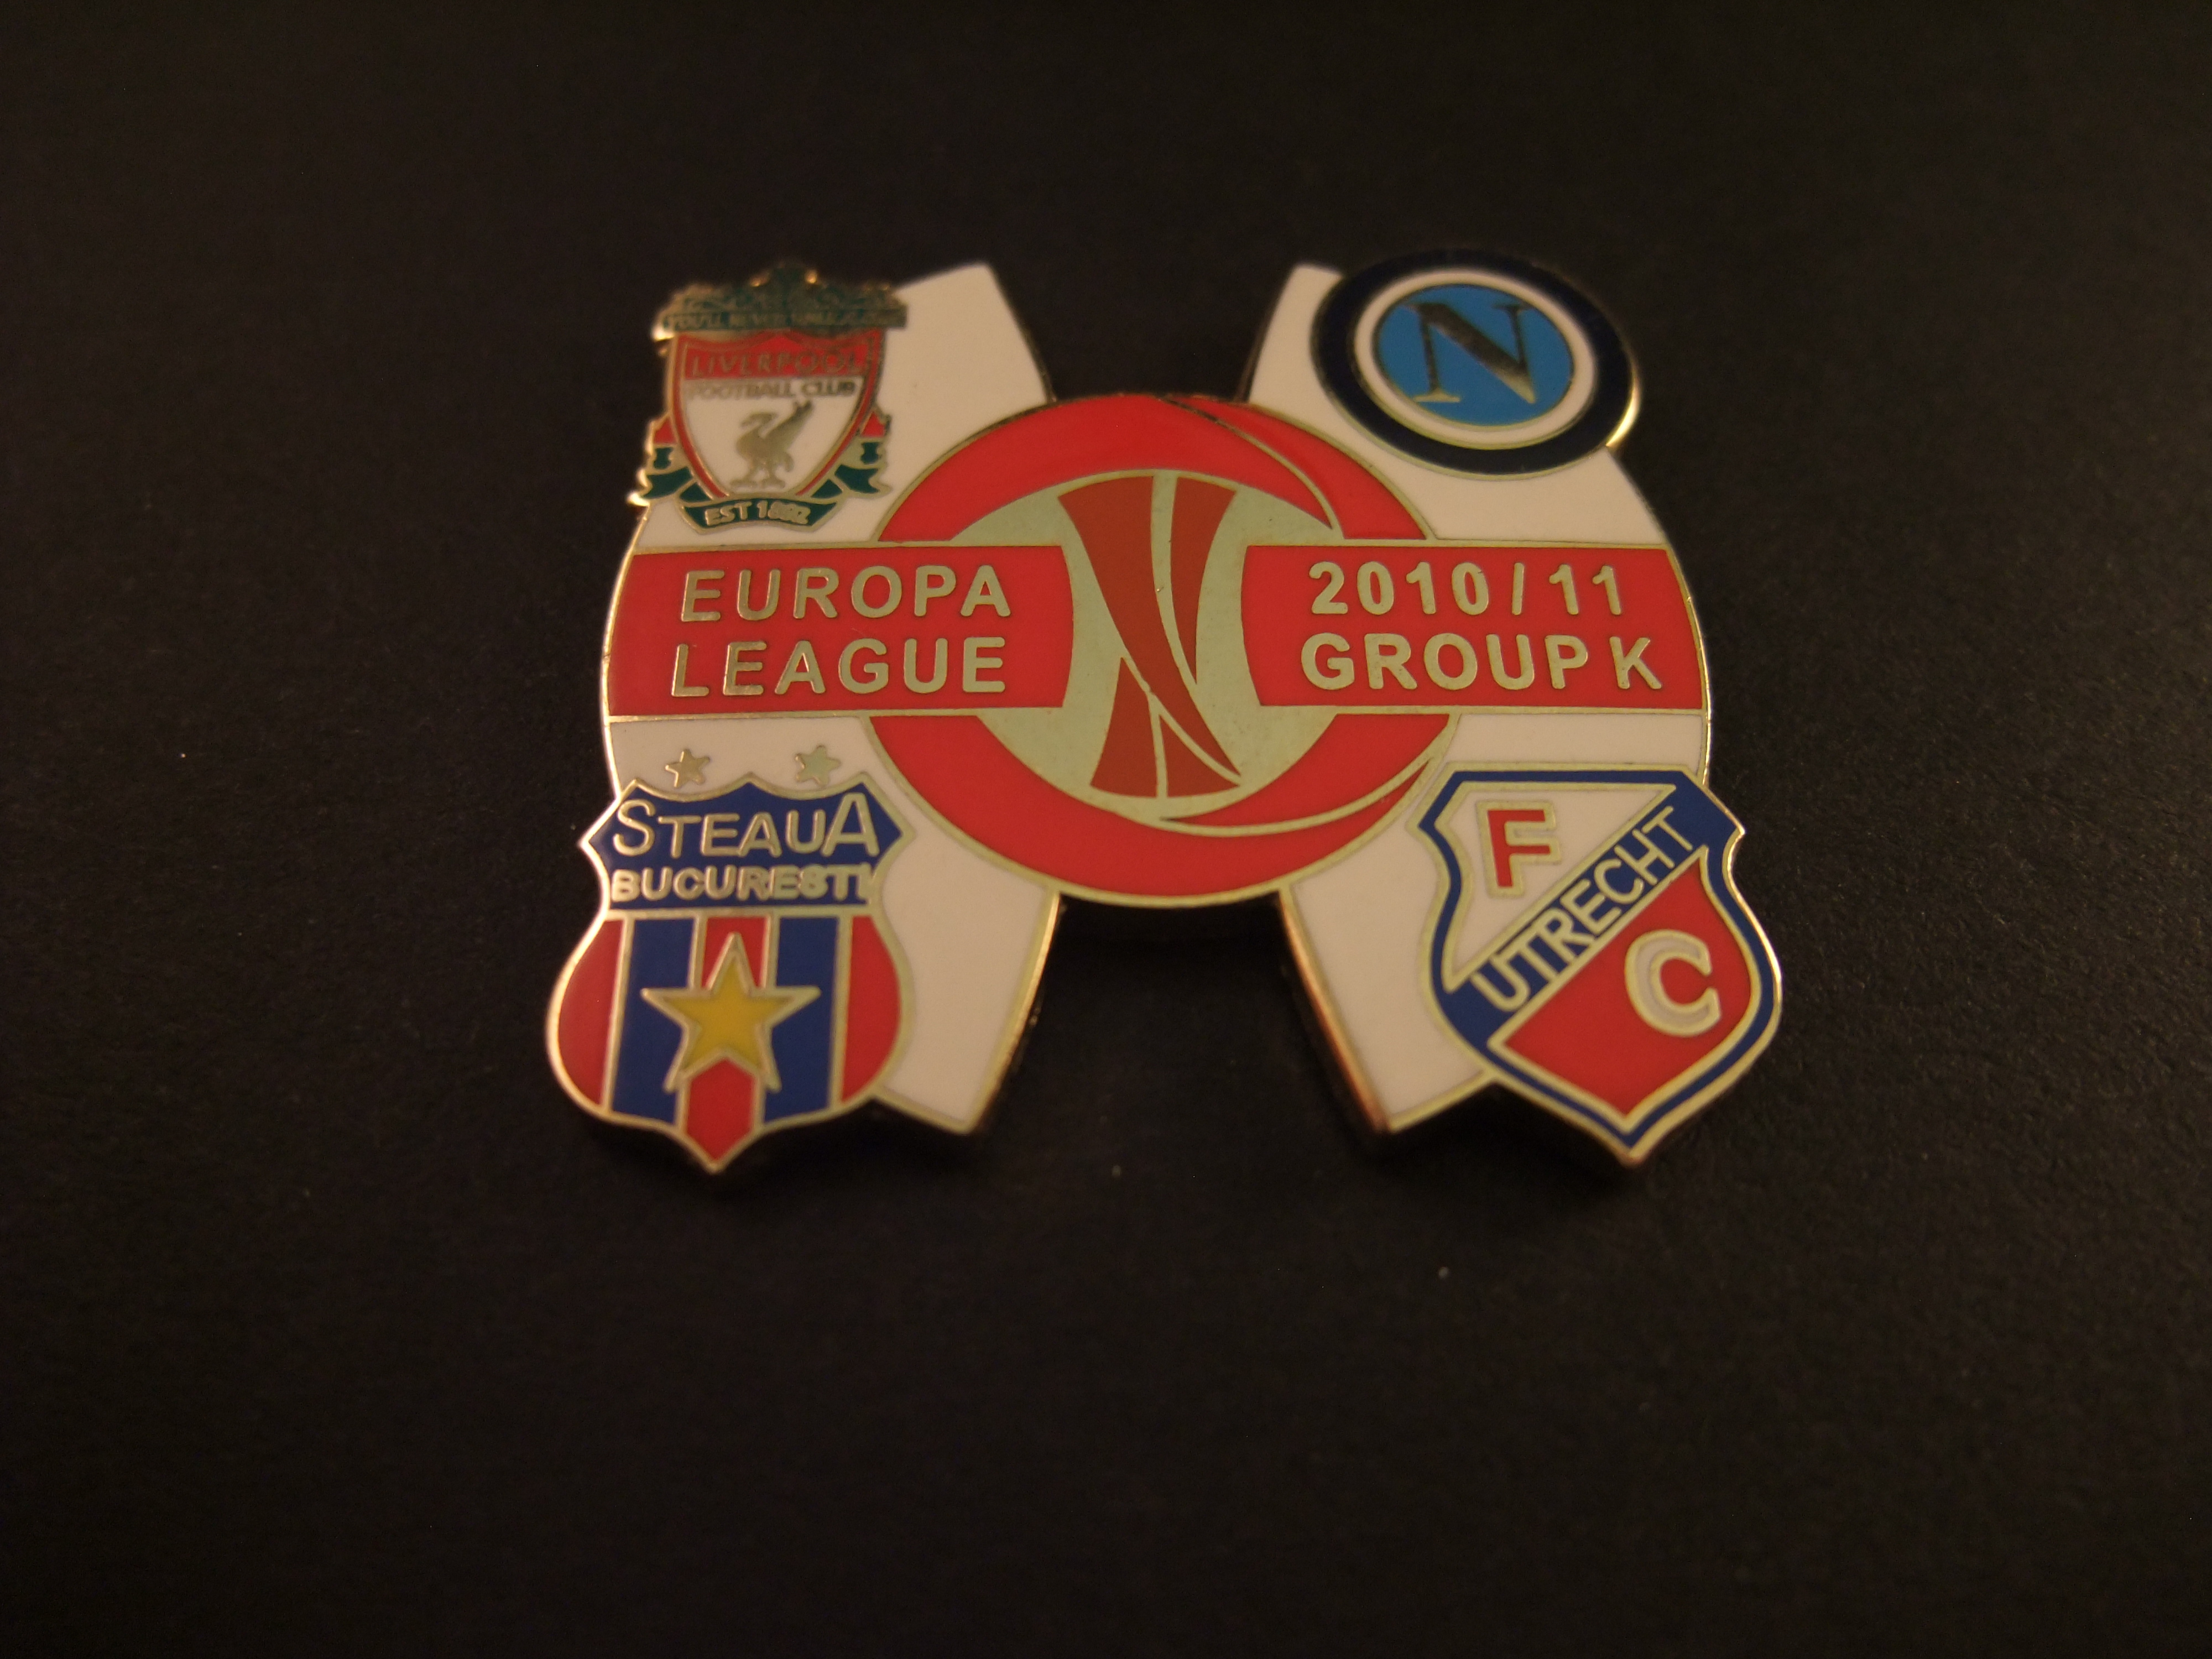 Europa League 2010-2011 Group K met Fc Utrecht , Liverpool, Steaua Boekarest,en Napoli